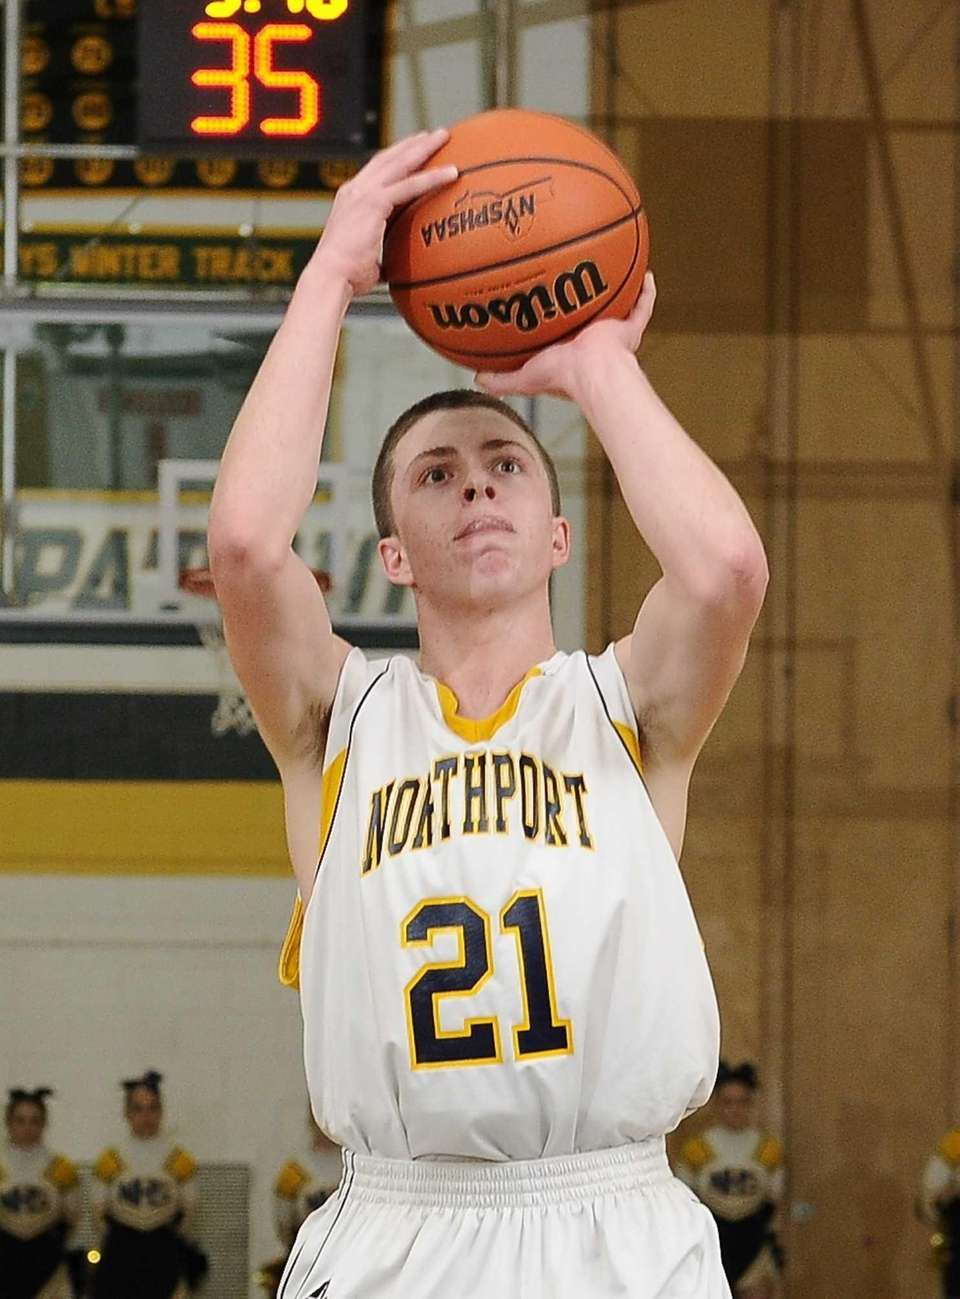 Northport's Austin Marchese shoots from the foul line